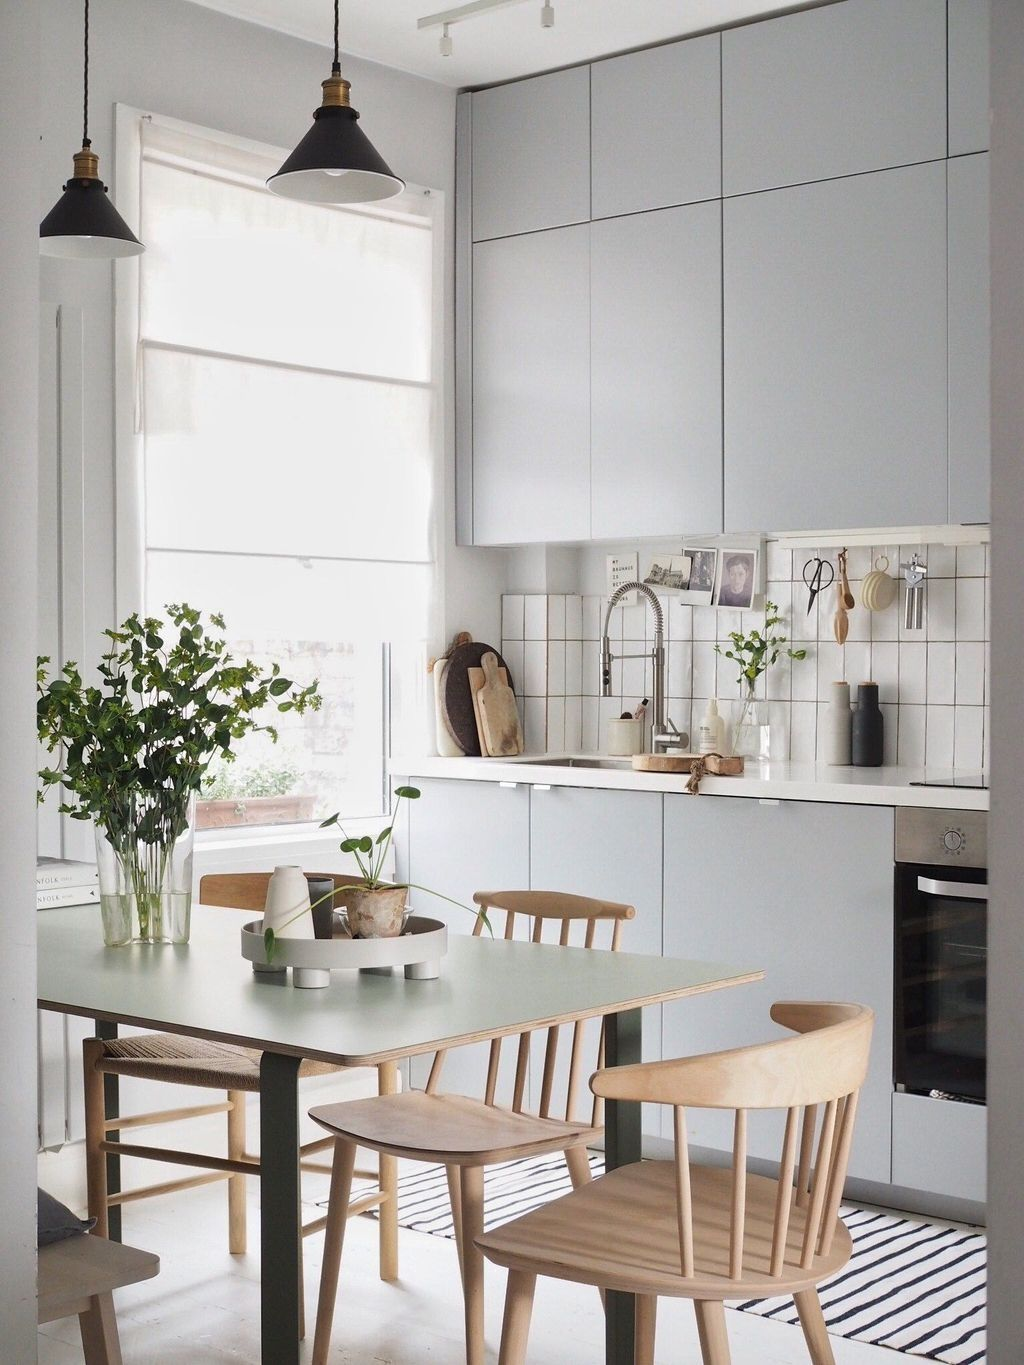 20 Modern Scandinavian Kitchen Design Ideas You Must See In 2020 Scandinavian Kitchen Design Simple Interior Design Interior Design Kitchen